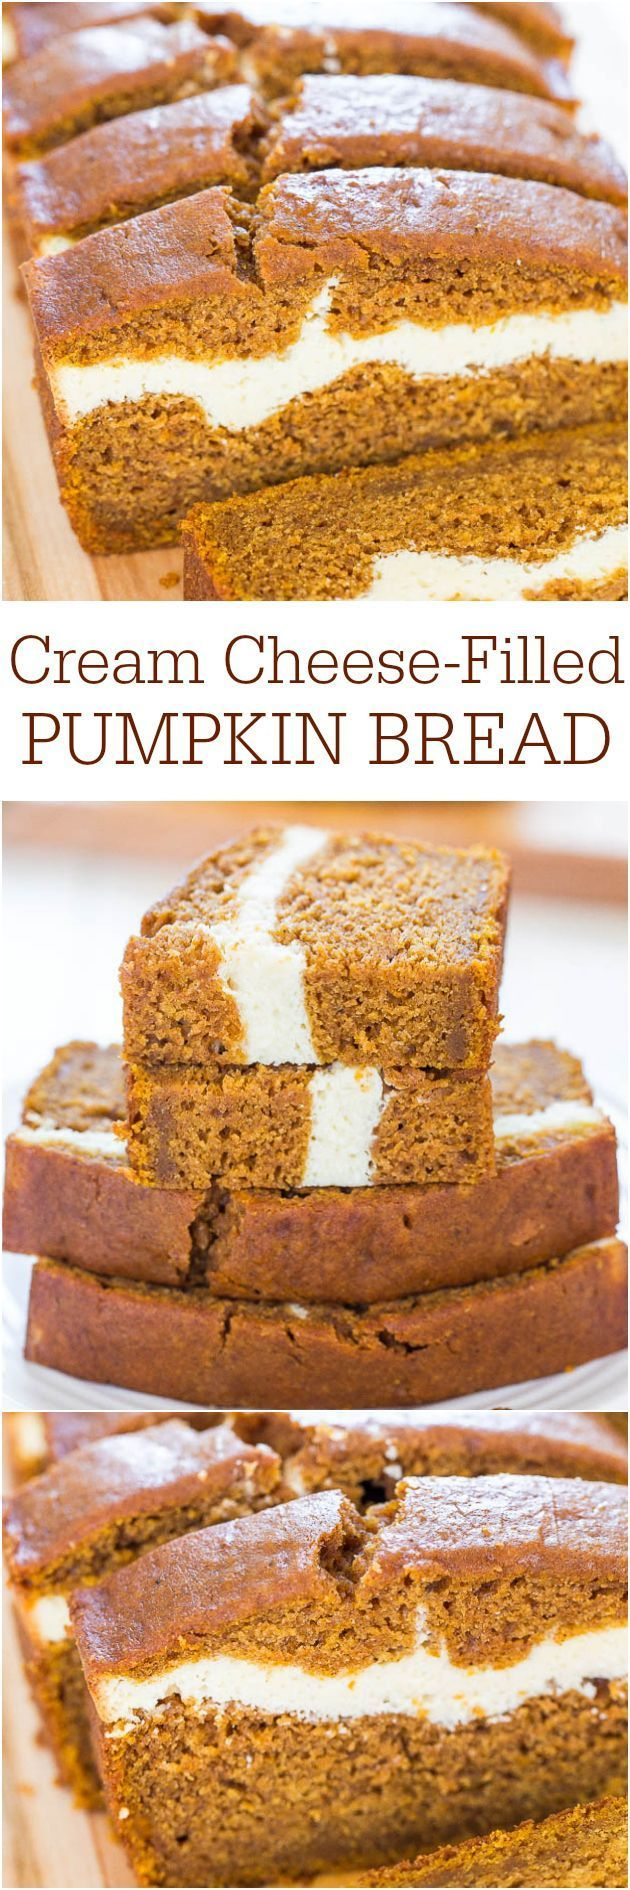 Cream Cheese-Filled Pumpkin Bread - Pumpkin bread thats like having cheesecake baked in! Soft, fluffy, easy and tastes ahhhh-mazing! ^^^ Get your healthy recipes now!